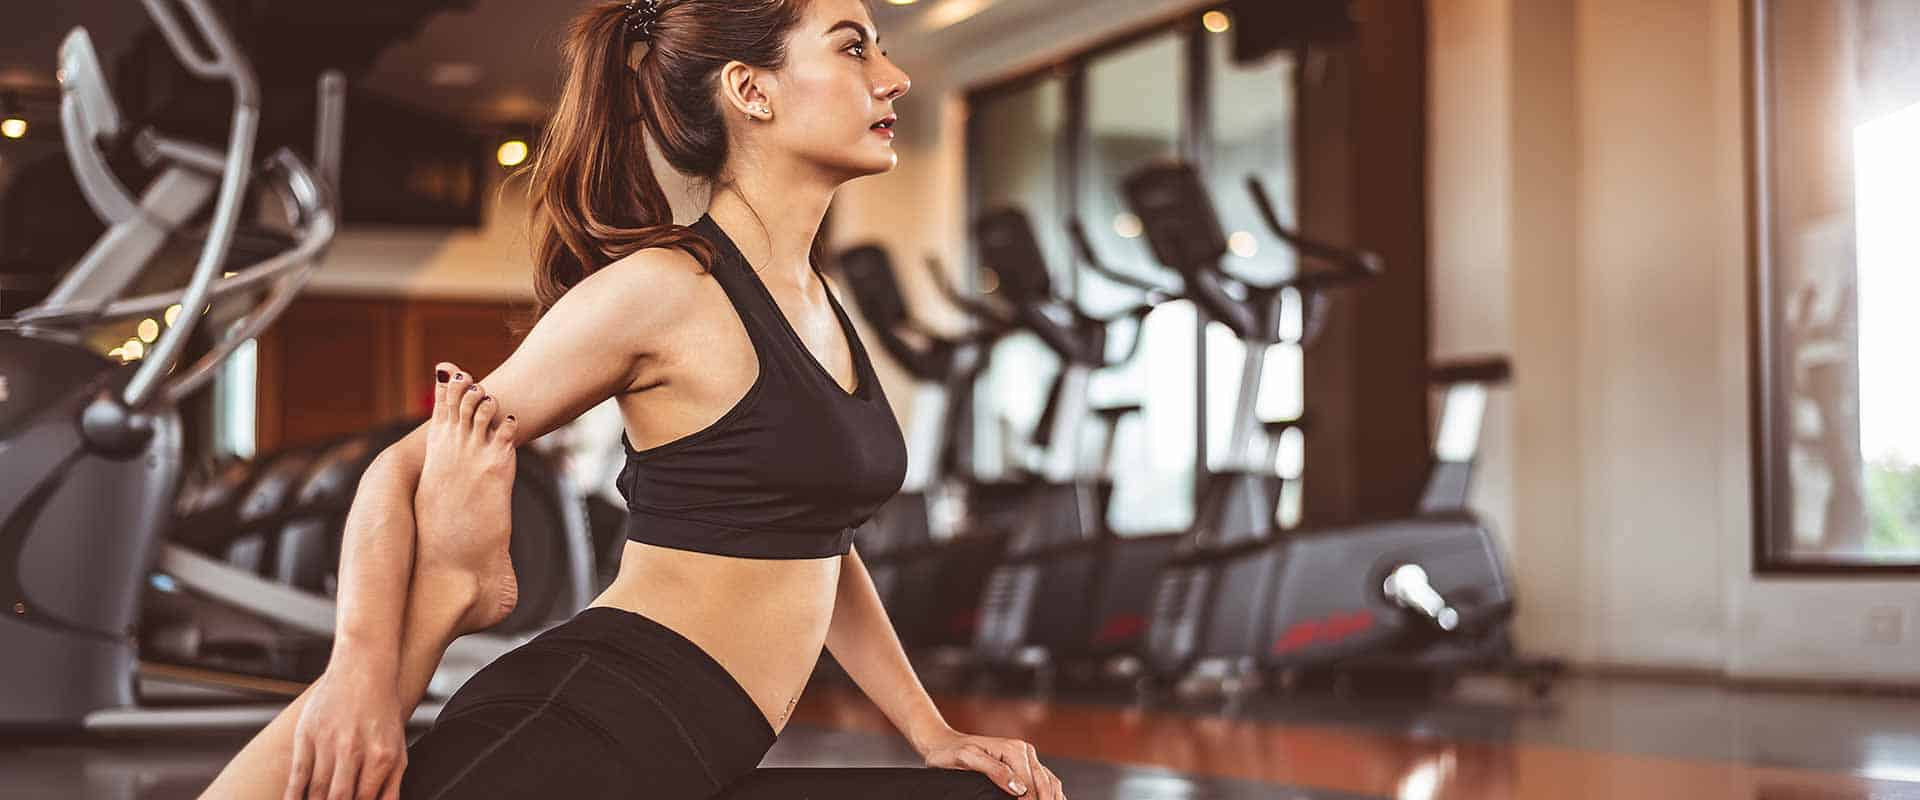 Stay fit and in great shape at Greystone Properties Apartments gyms and greycard fitness & health participants